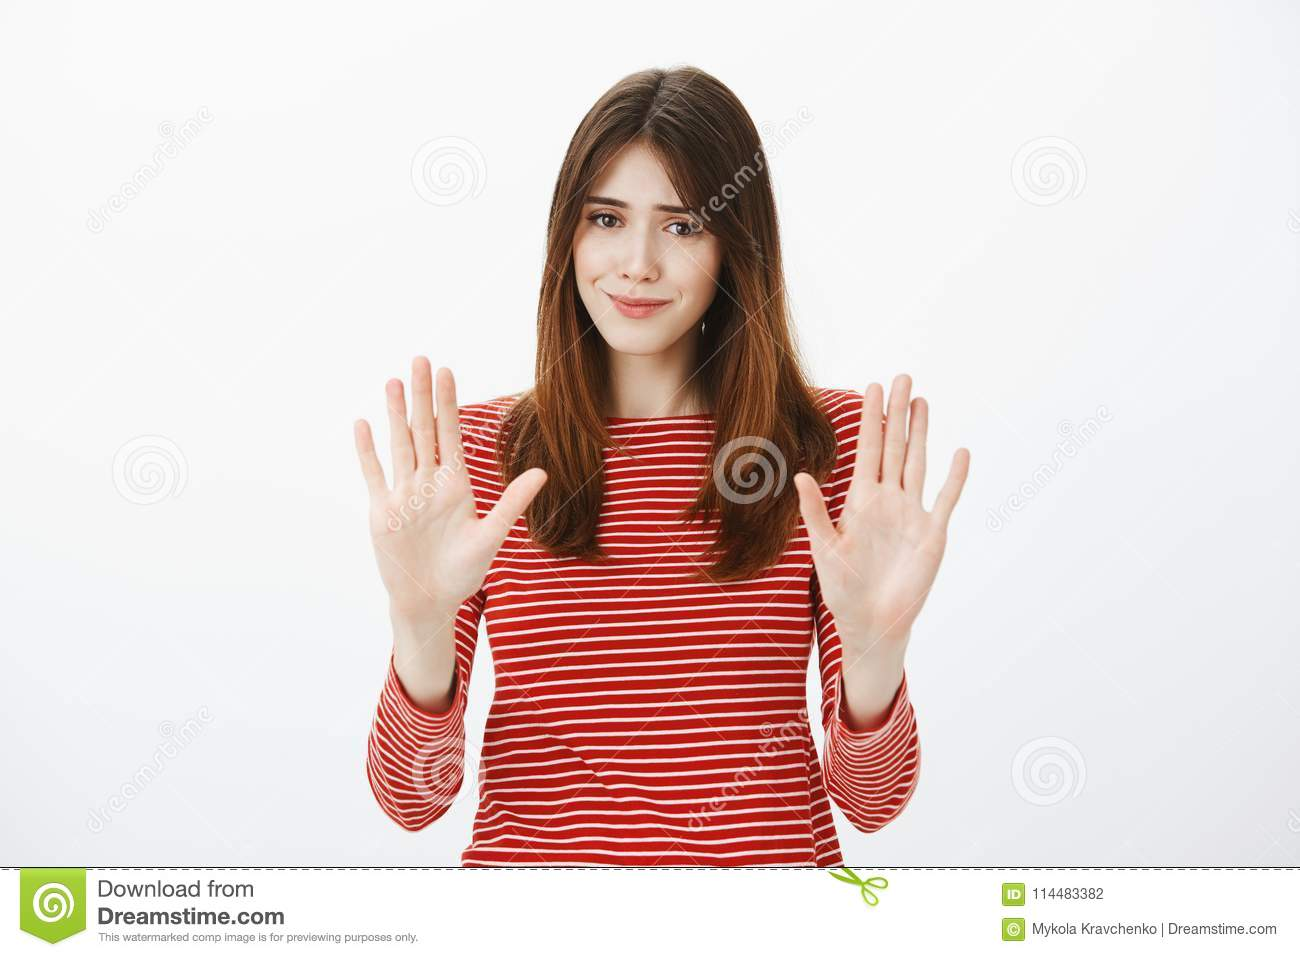 That is enough, thanks. Portrait of uncomfortable pretty brunette, raising palms in no or stop gesture, smiling